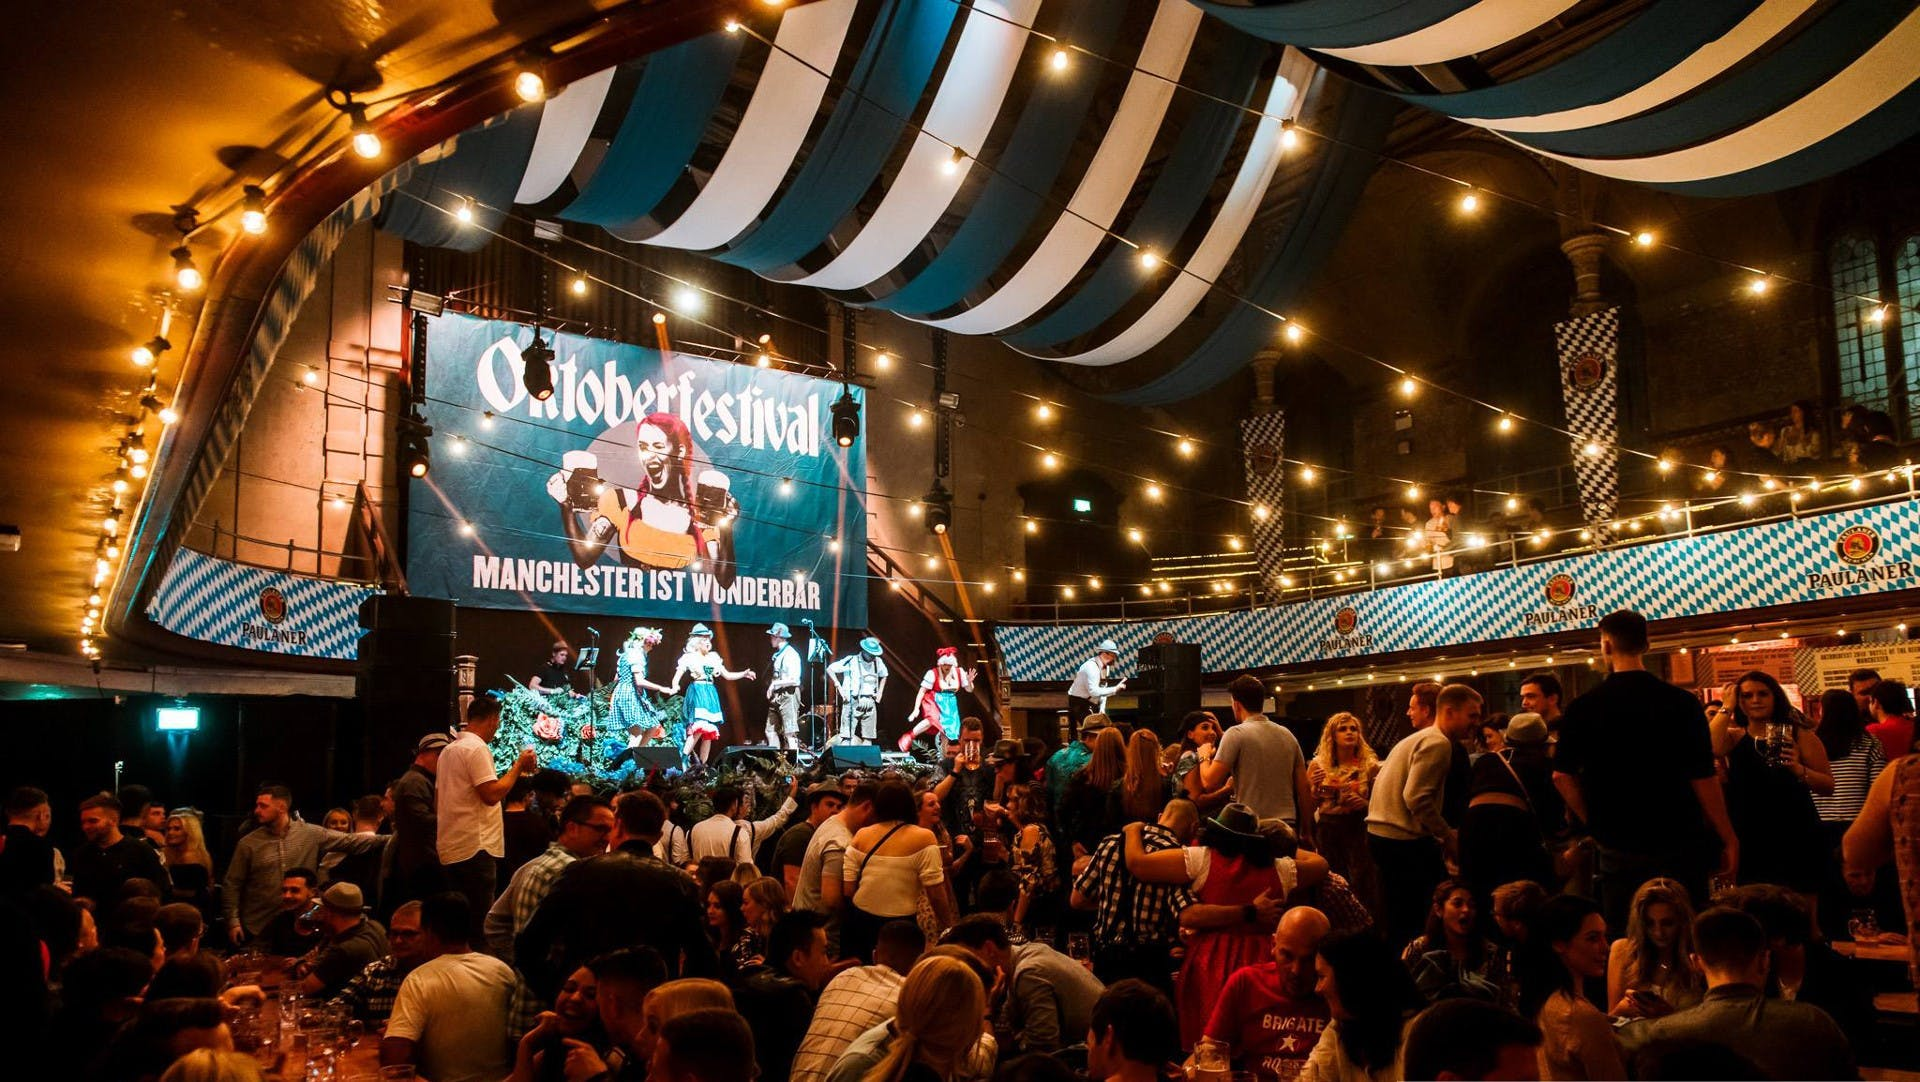 Oktoberfest 2019: Saturday Night